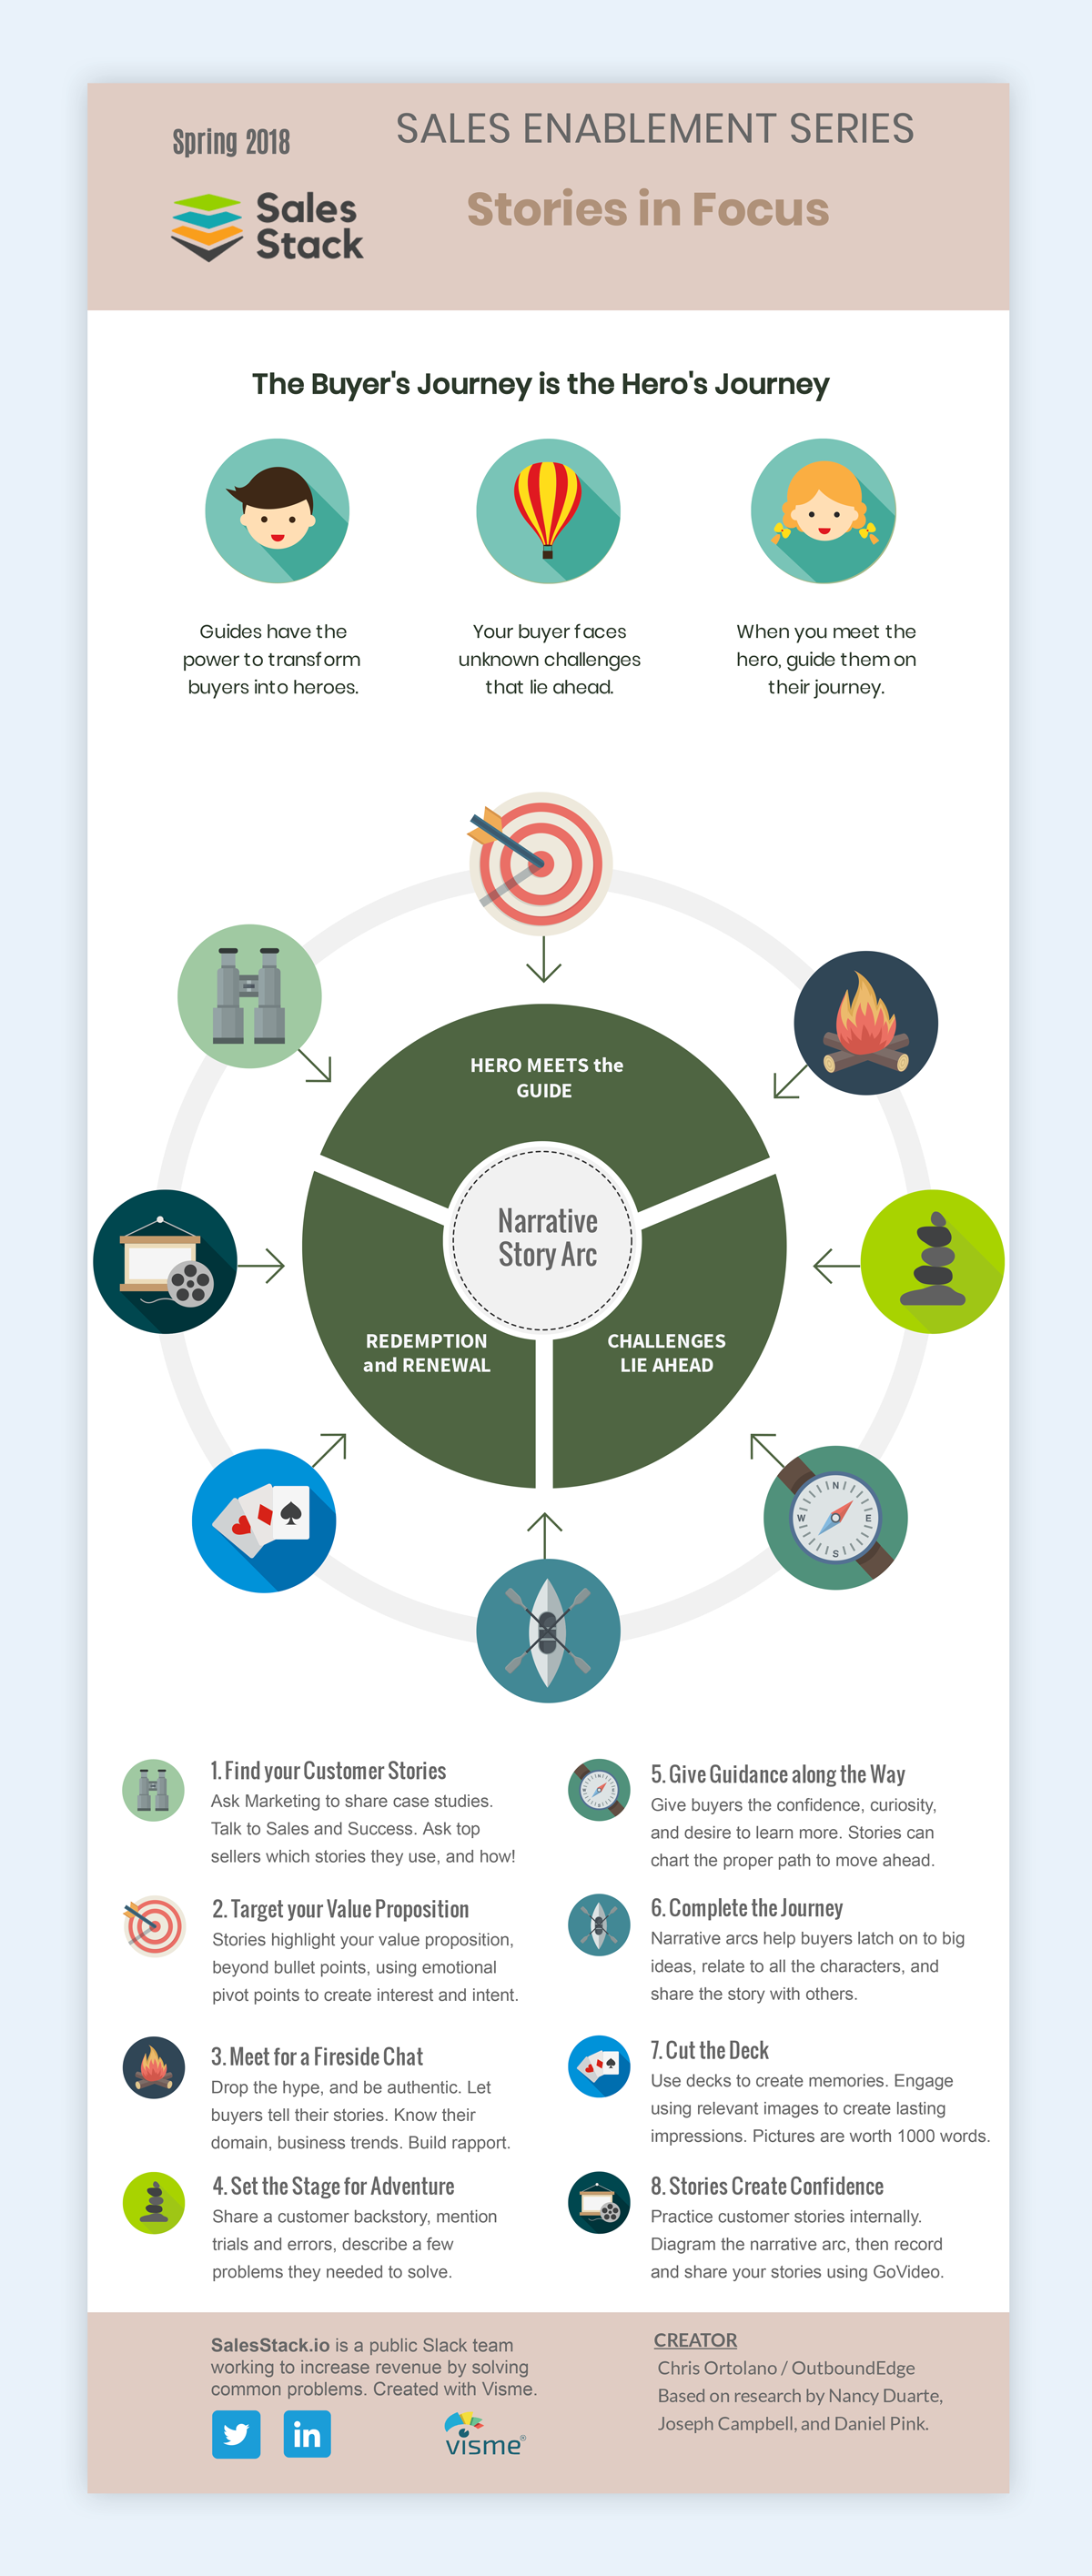 sales enablement infographic sales storytelling buyer's journey hero's journey